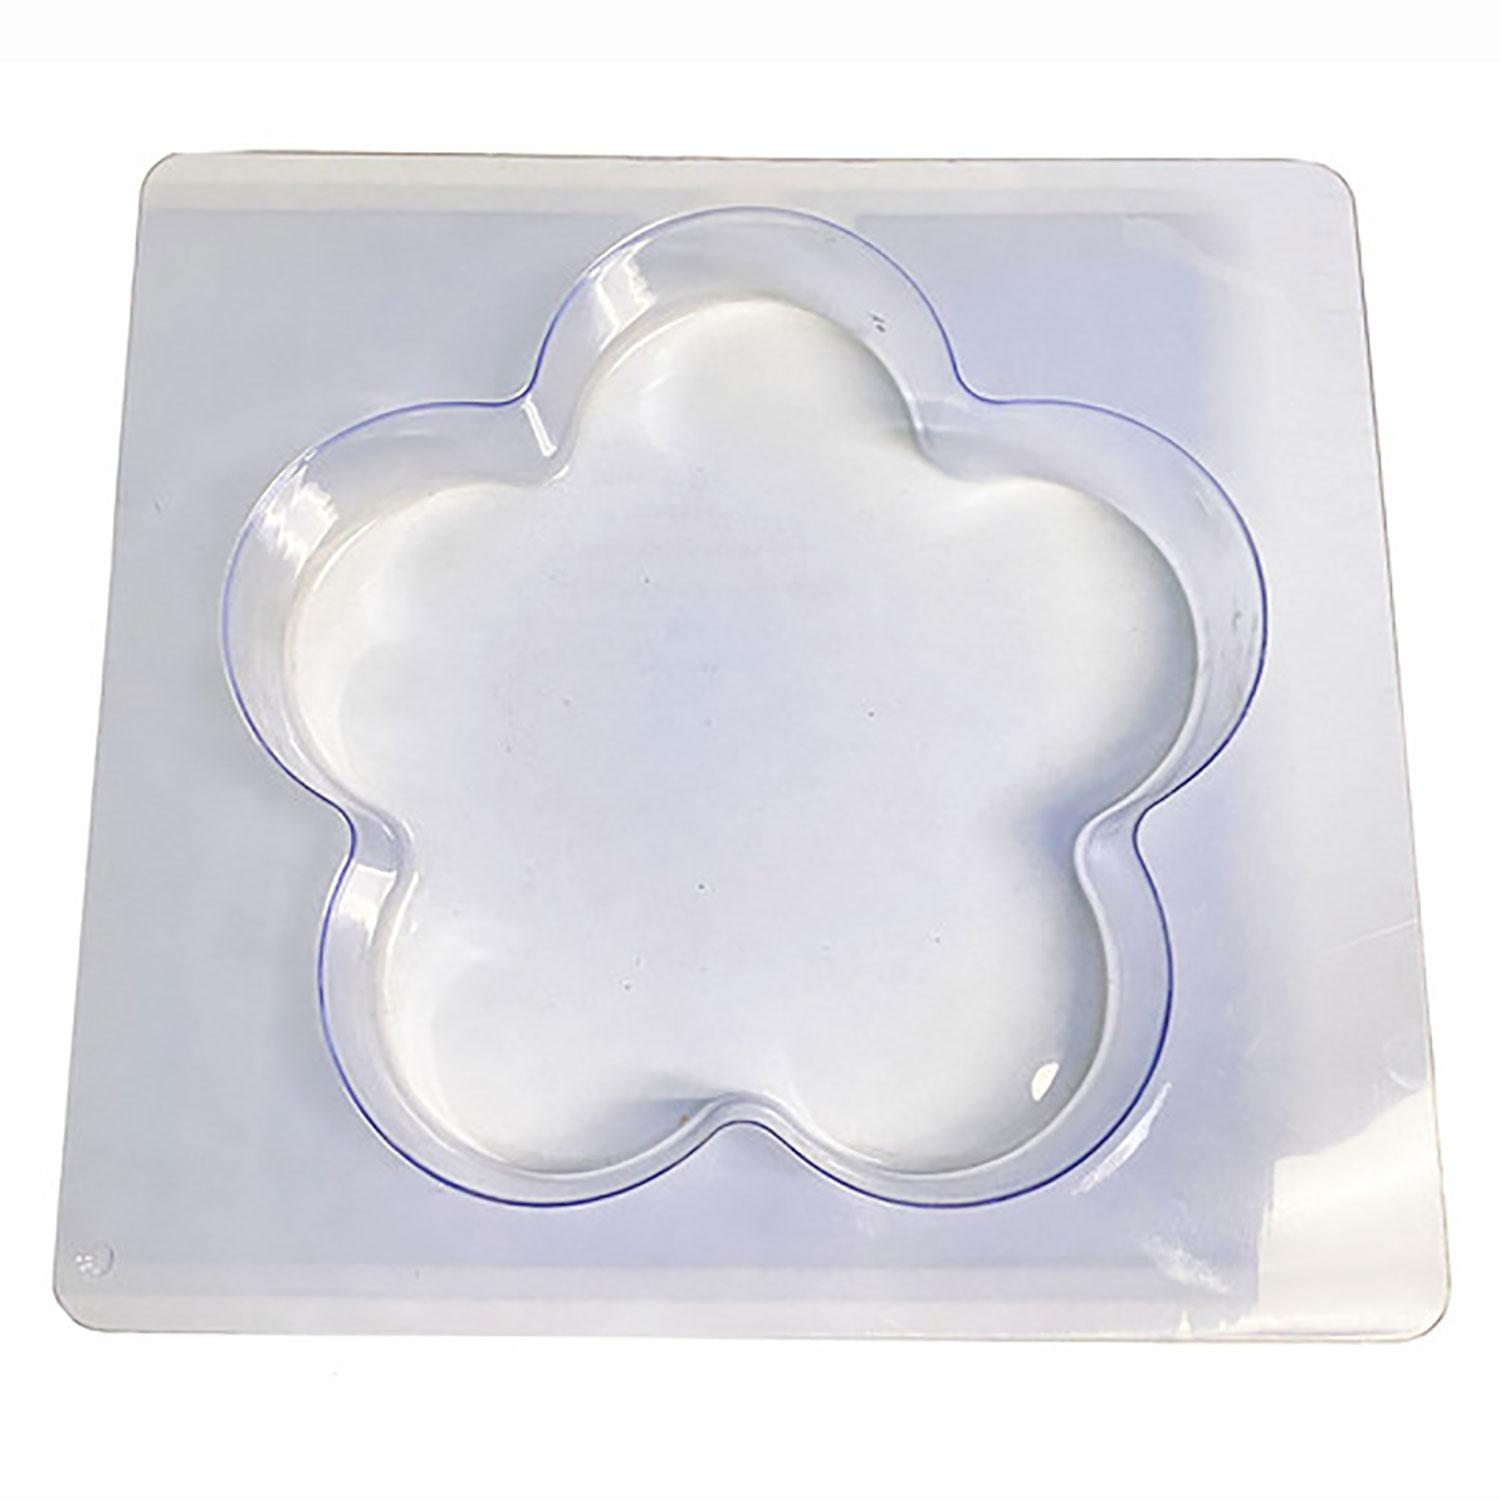 8 Flower Stepping Stone Mold